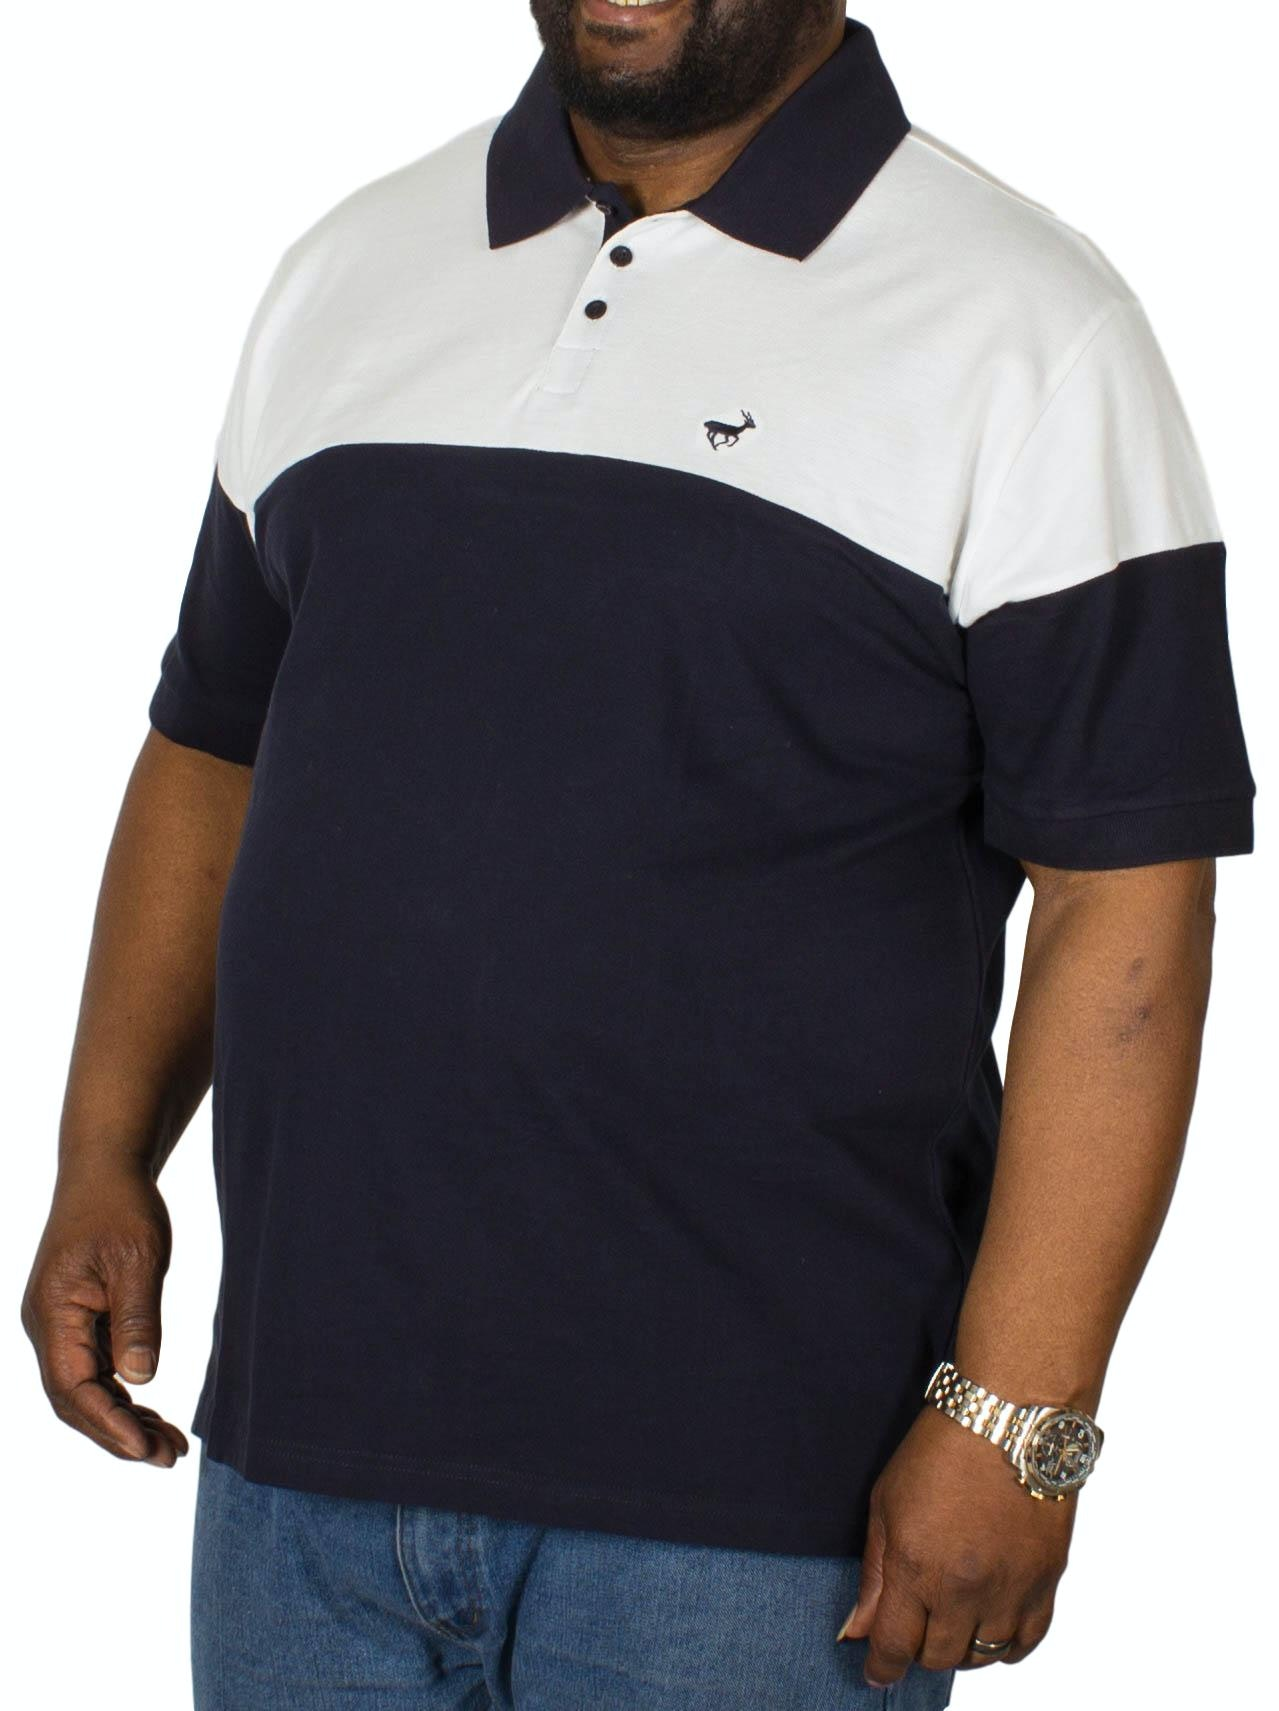 Bigdude Cut & Sew Polo Shirt White/Navy